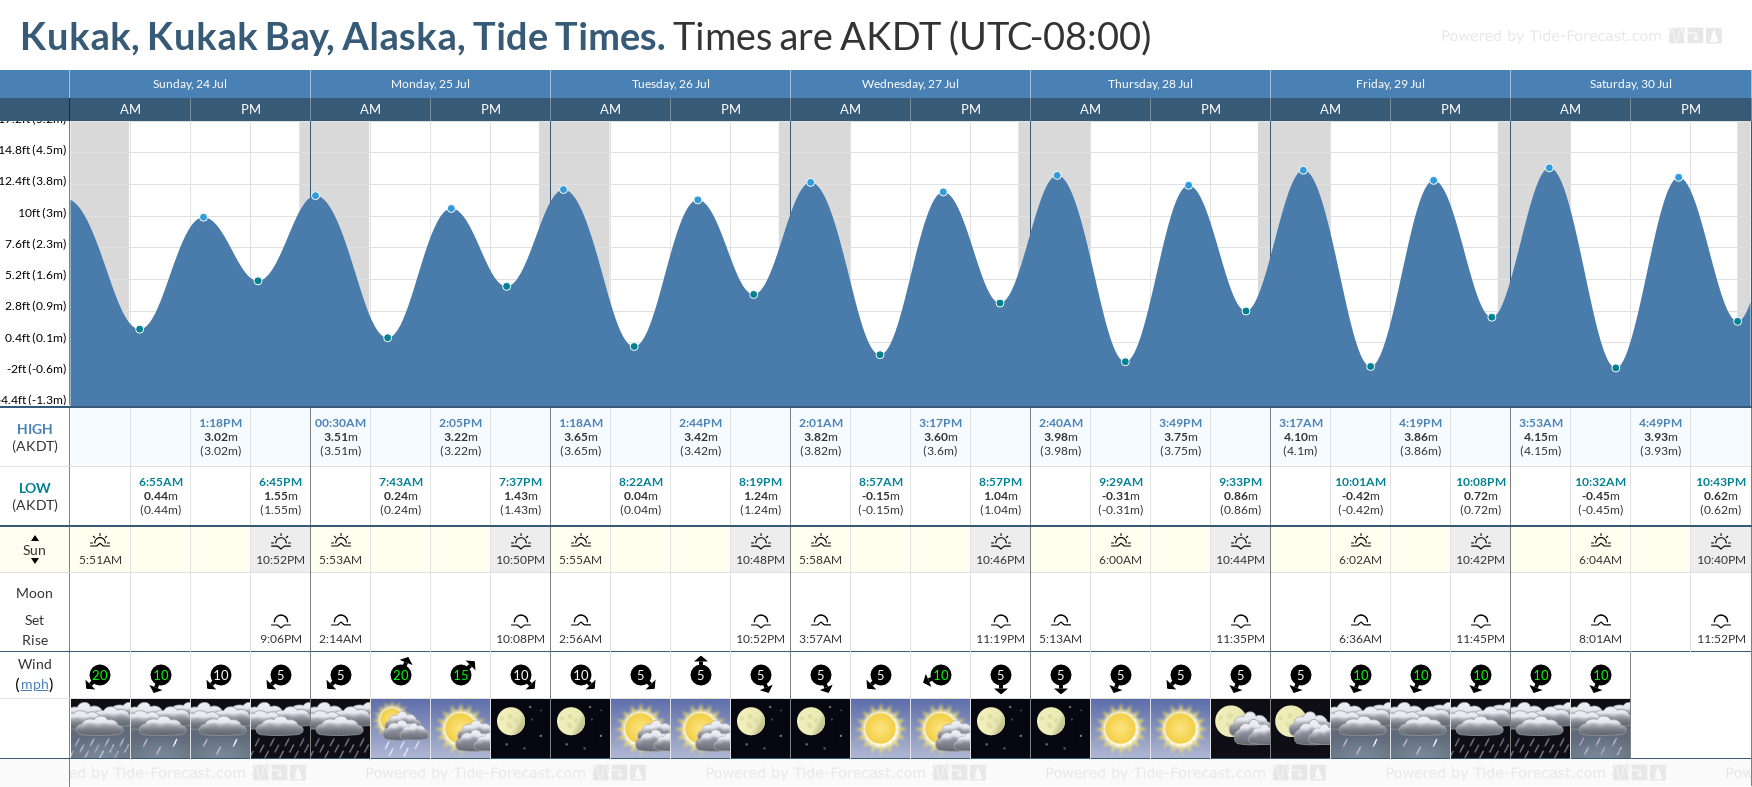 Kukak, Kukak Bay, Alaska Tide Chart including high and low tide tide times for the next 7 days